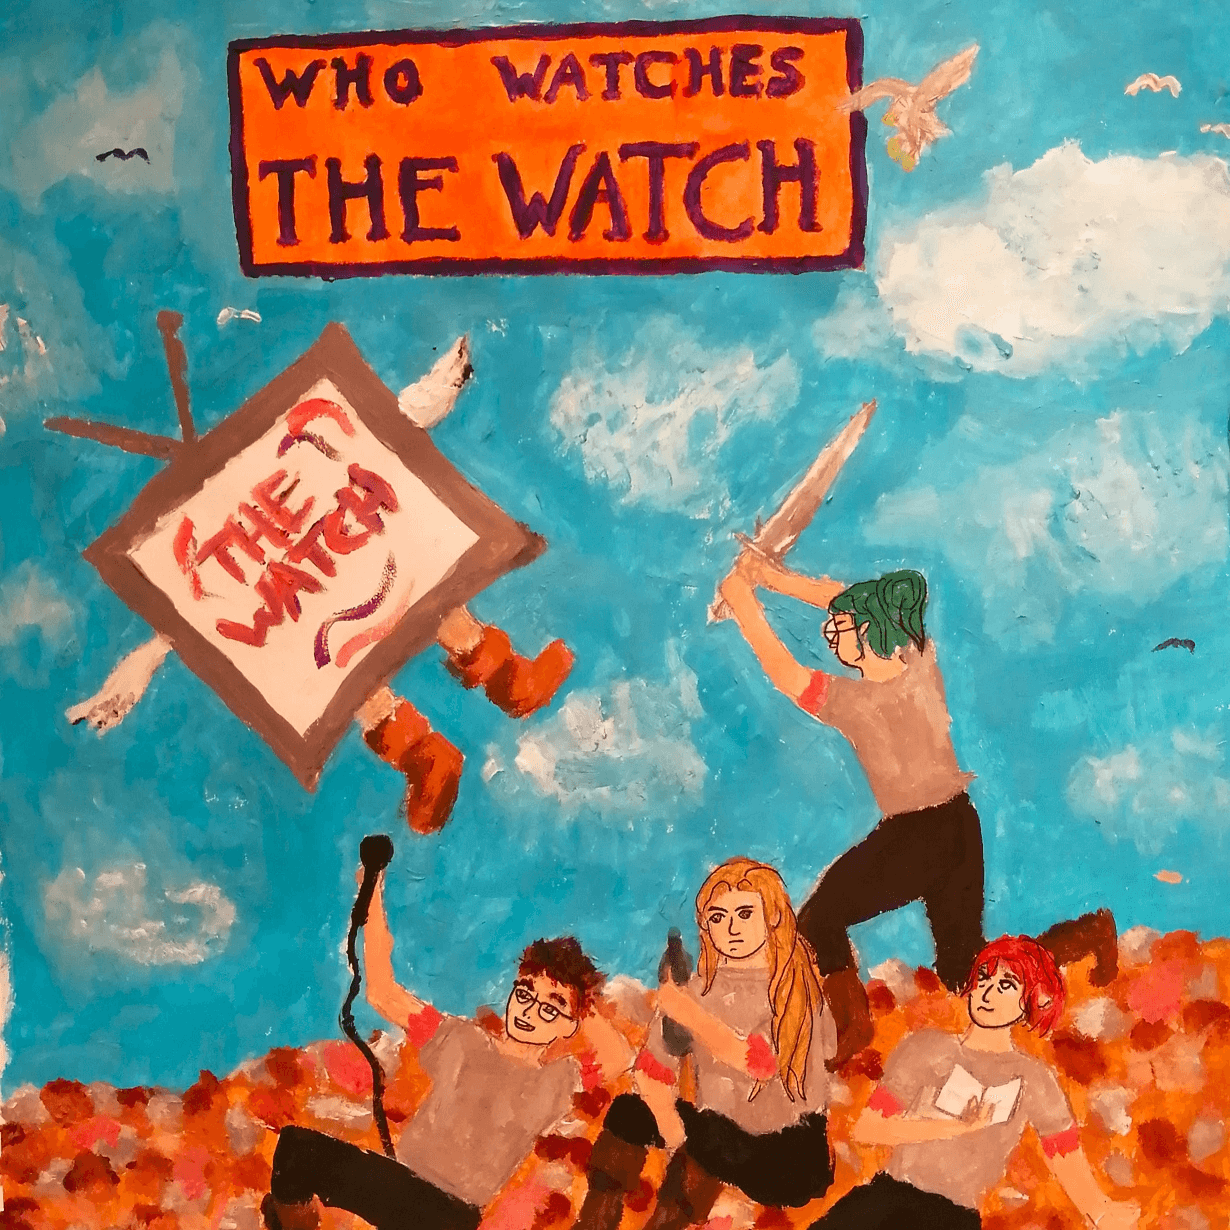 Who Watches the Watch